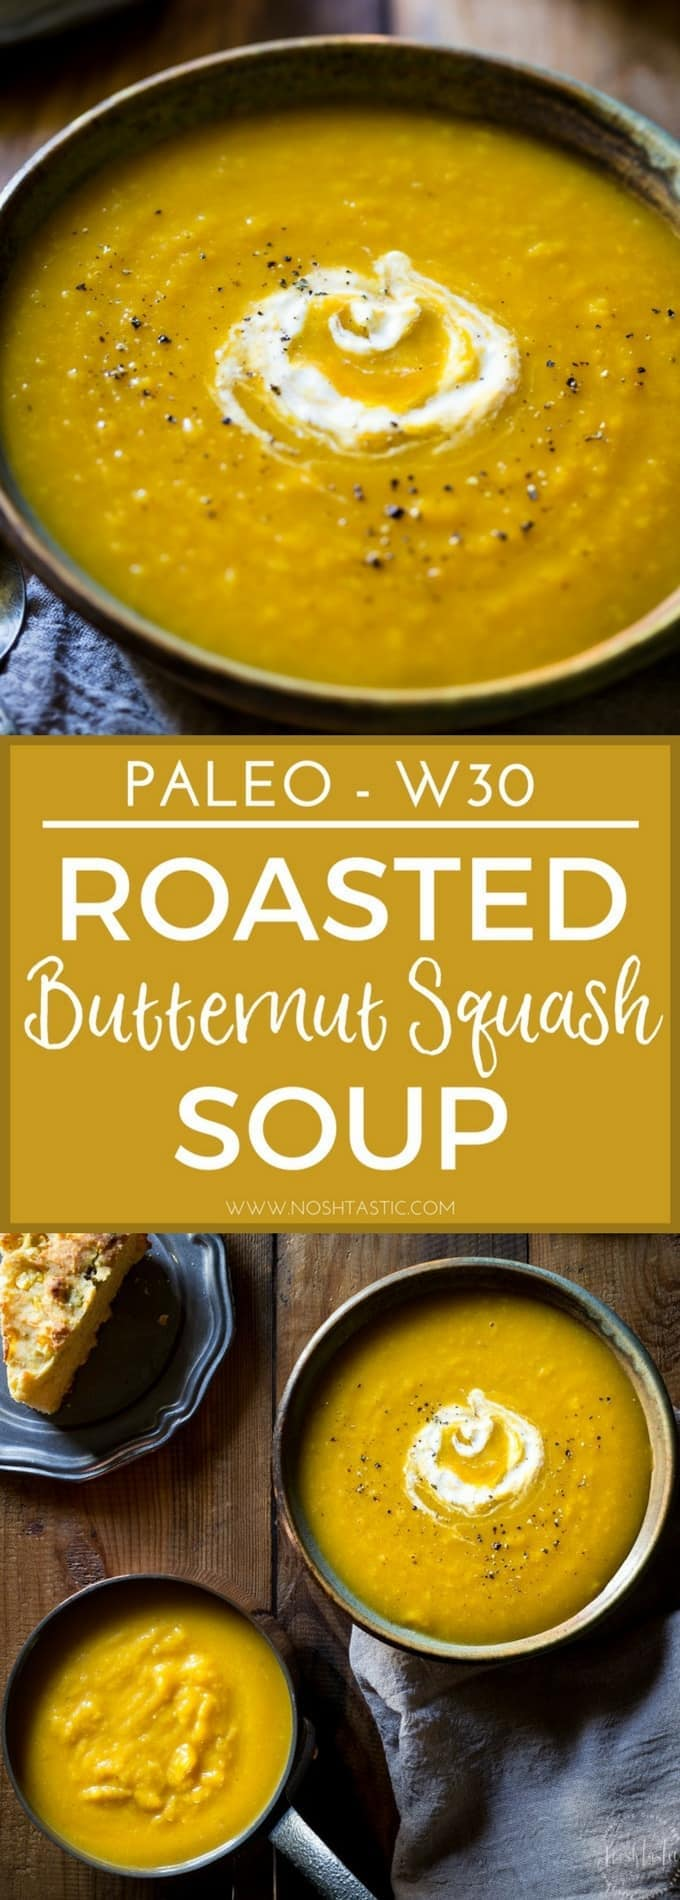 This naturally creamy Roasted Paleo Butternut Squash Soup with Apple is so easy to make and super healthy, it's gluten free and Whole30 and can be made vegan